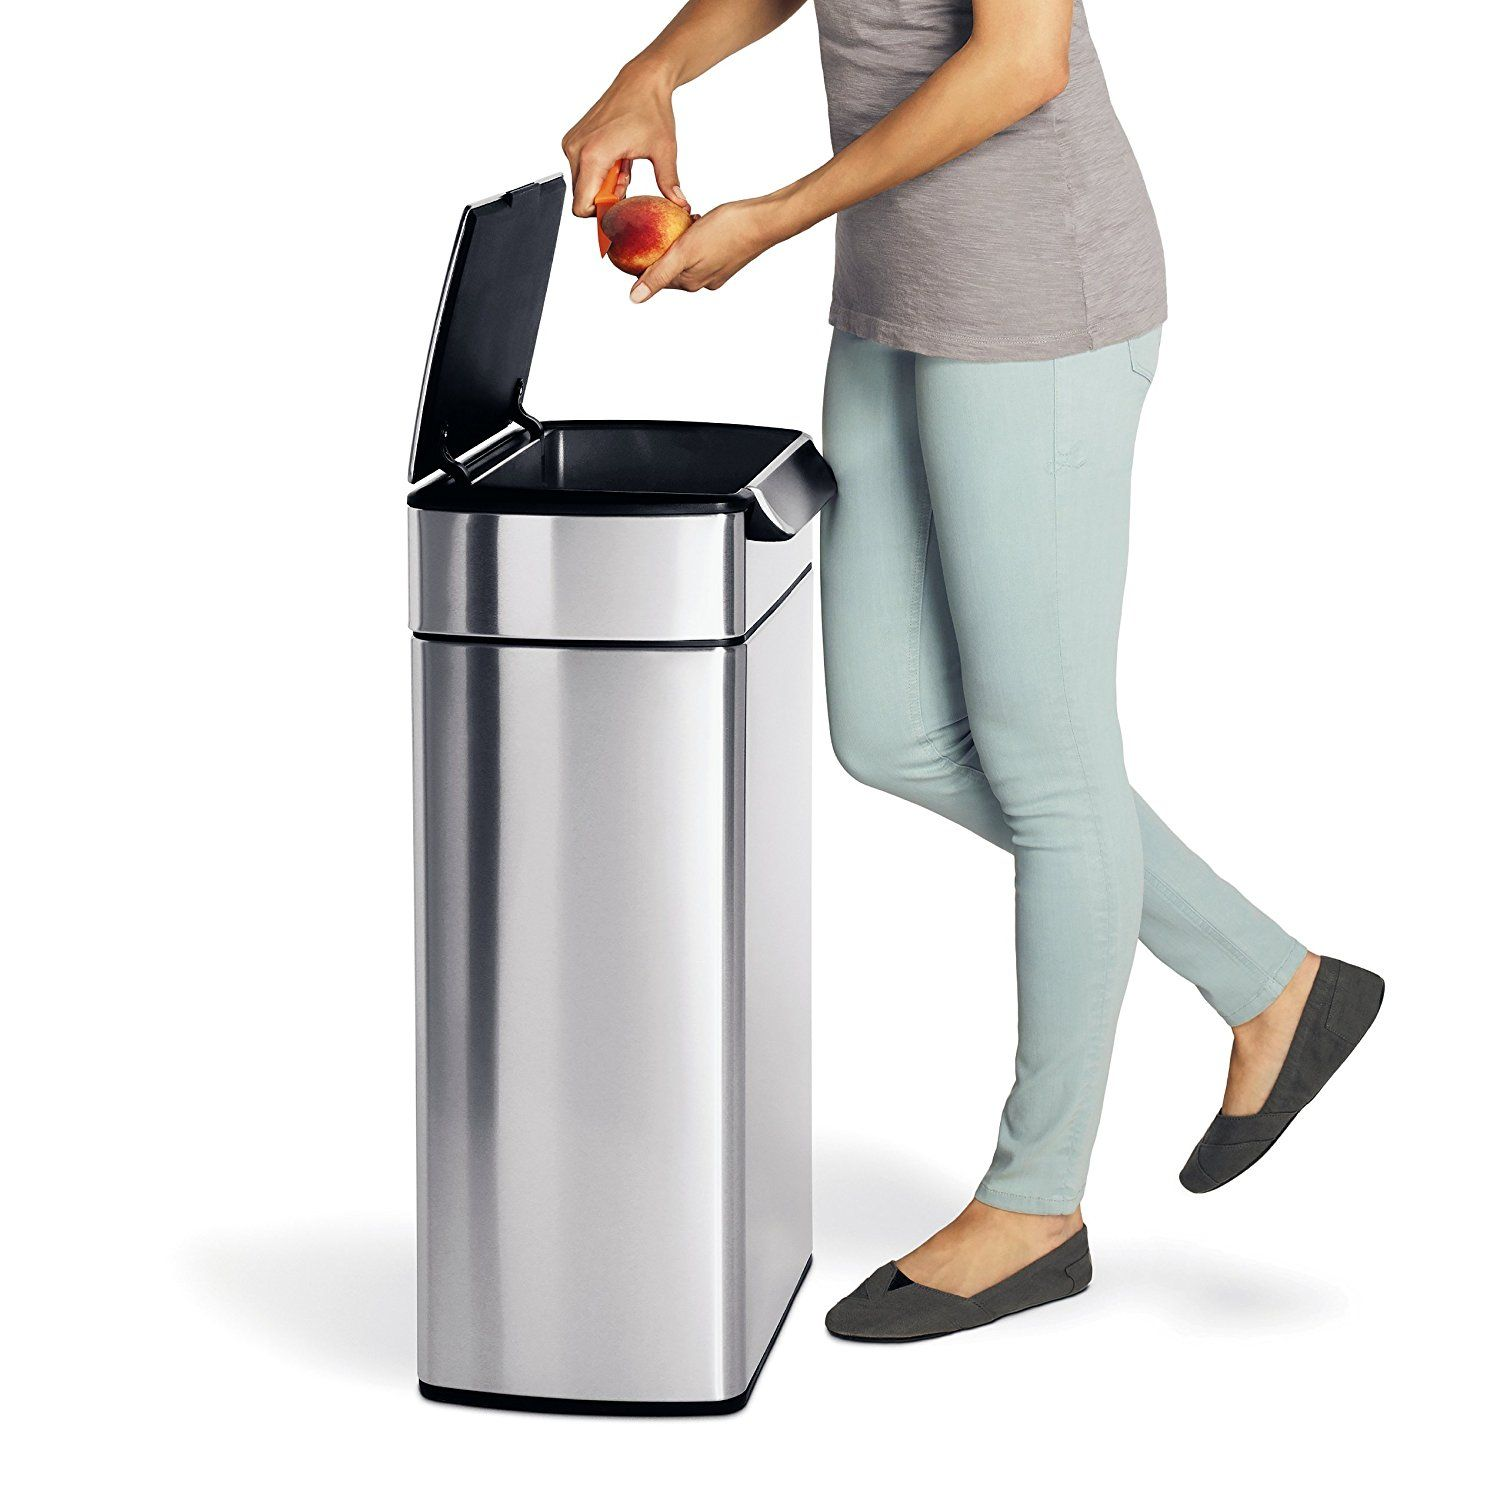 Amazon Com Simplehuman Rectangular Touch Bar Trash Can Stainless Steel 40 L 10 5 Gal Home Kitchen Simplehuman Trash Can Kitchen Trash Cans